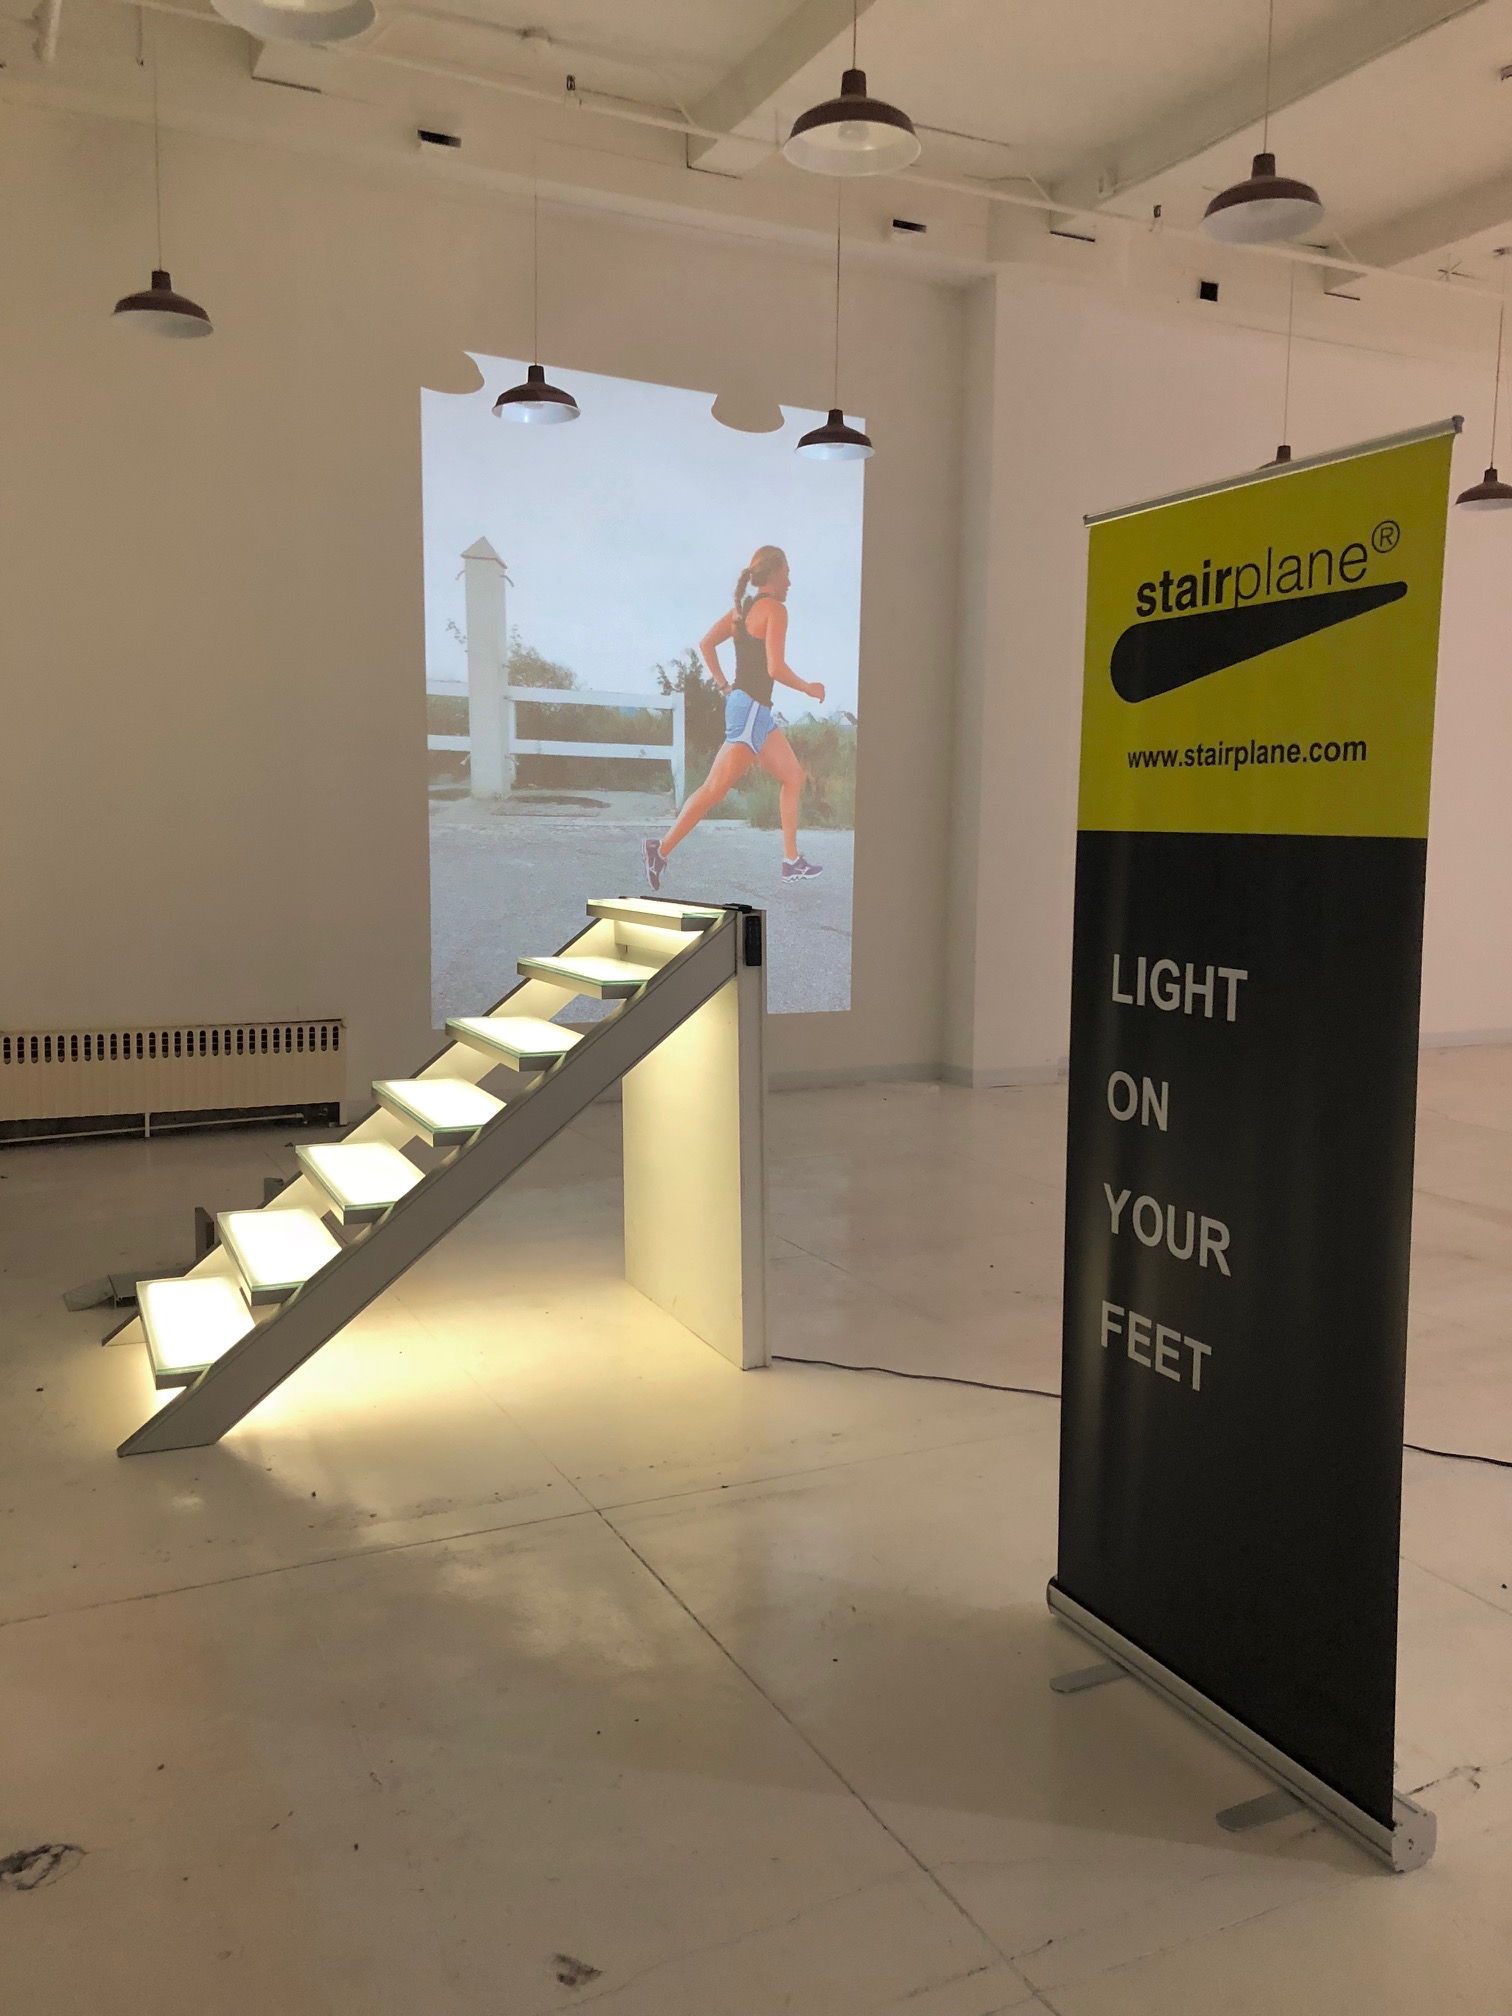 STAIRPLANE™ LIGHT ON YOUR FEET